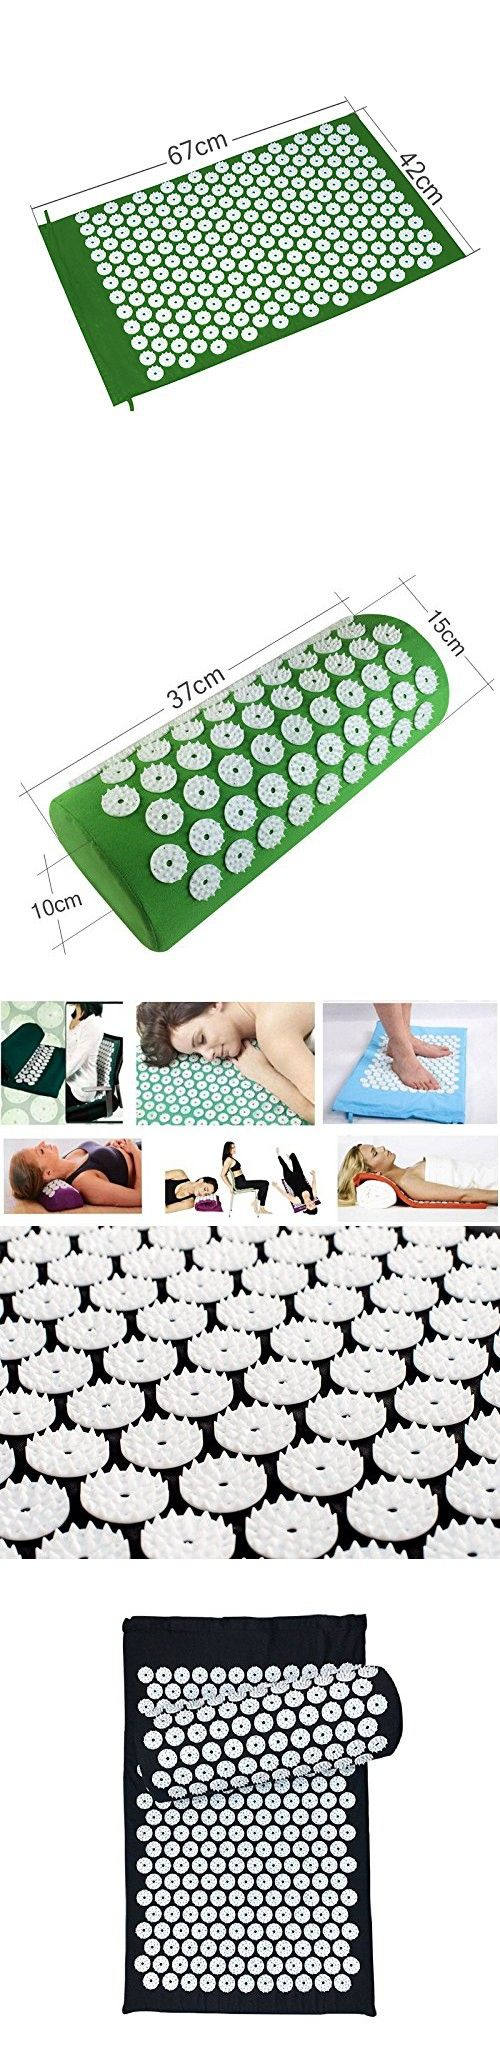 Body head foot massager cushion acupressure mat relieve stress pain